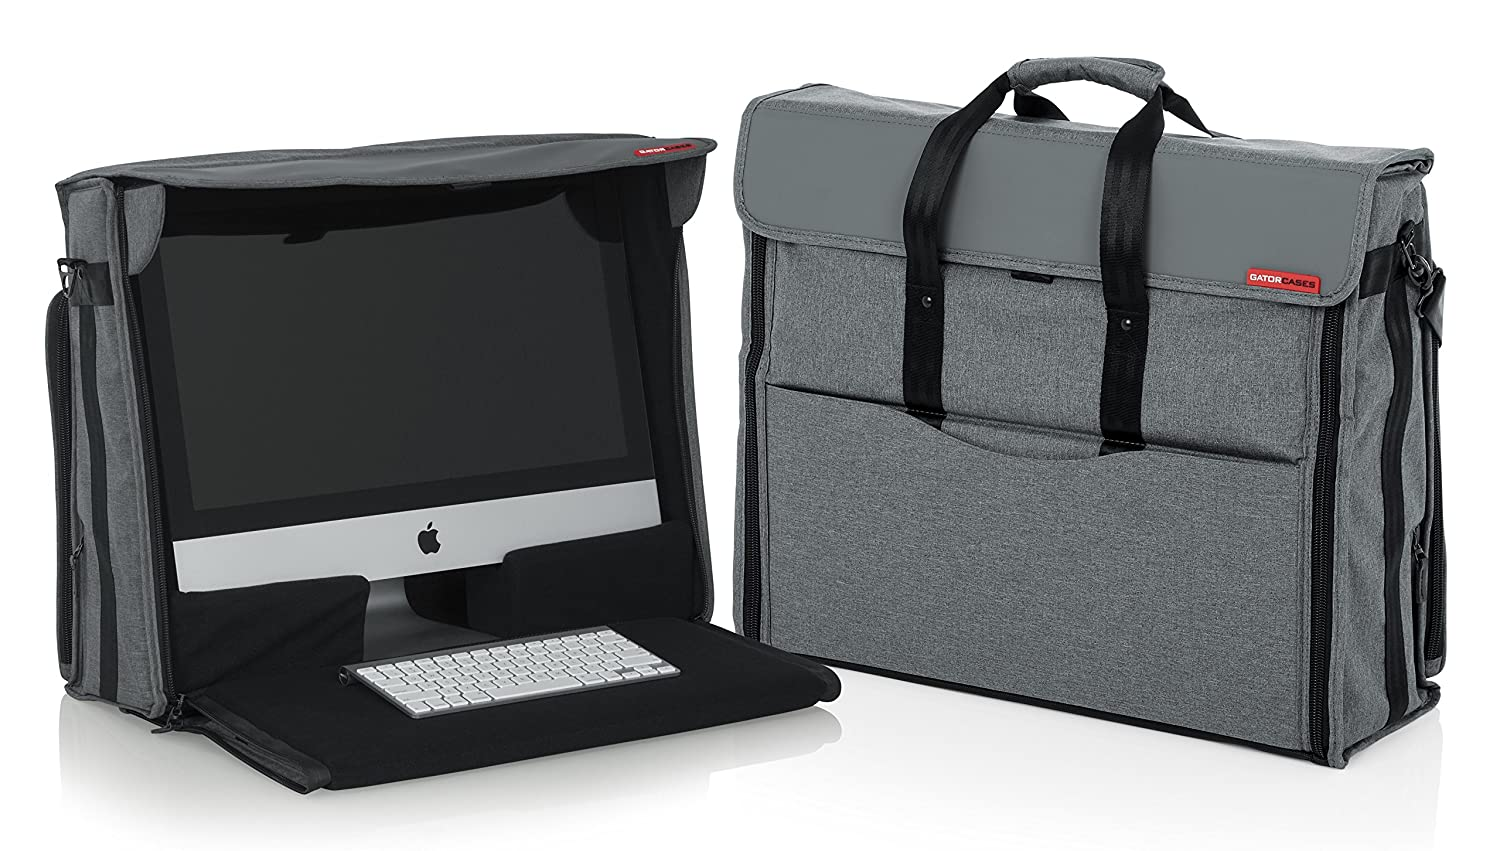 Gator Cases Creative Pro Series Nylon Carry Tote Bag for Apple 27 iMac Desktop Computer (G-CPR-IM27) Erikson Audio